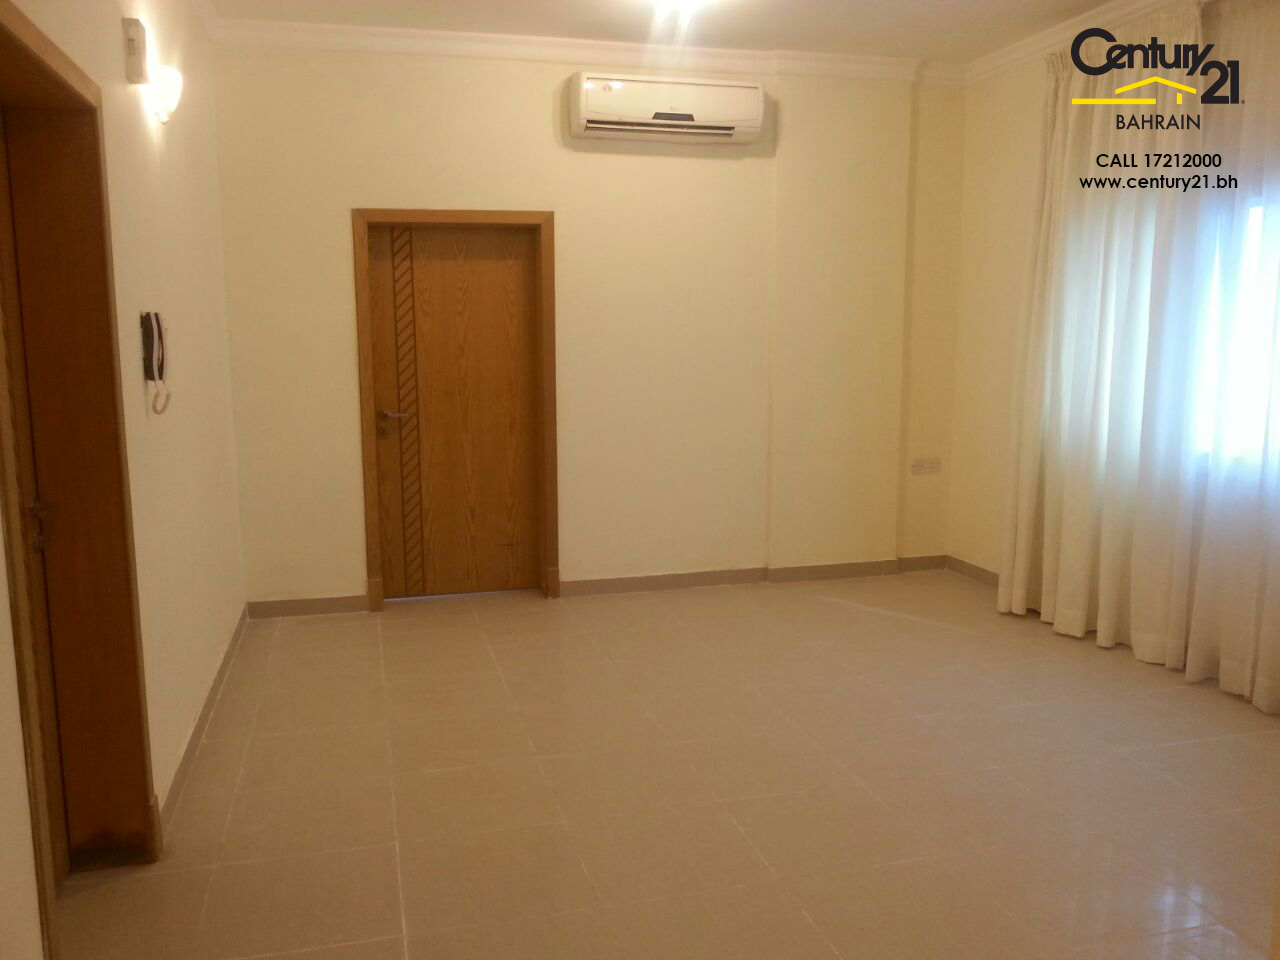 2 Bedroom Apartment For Rent In Hidd Fr667 Century 21